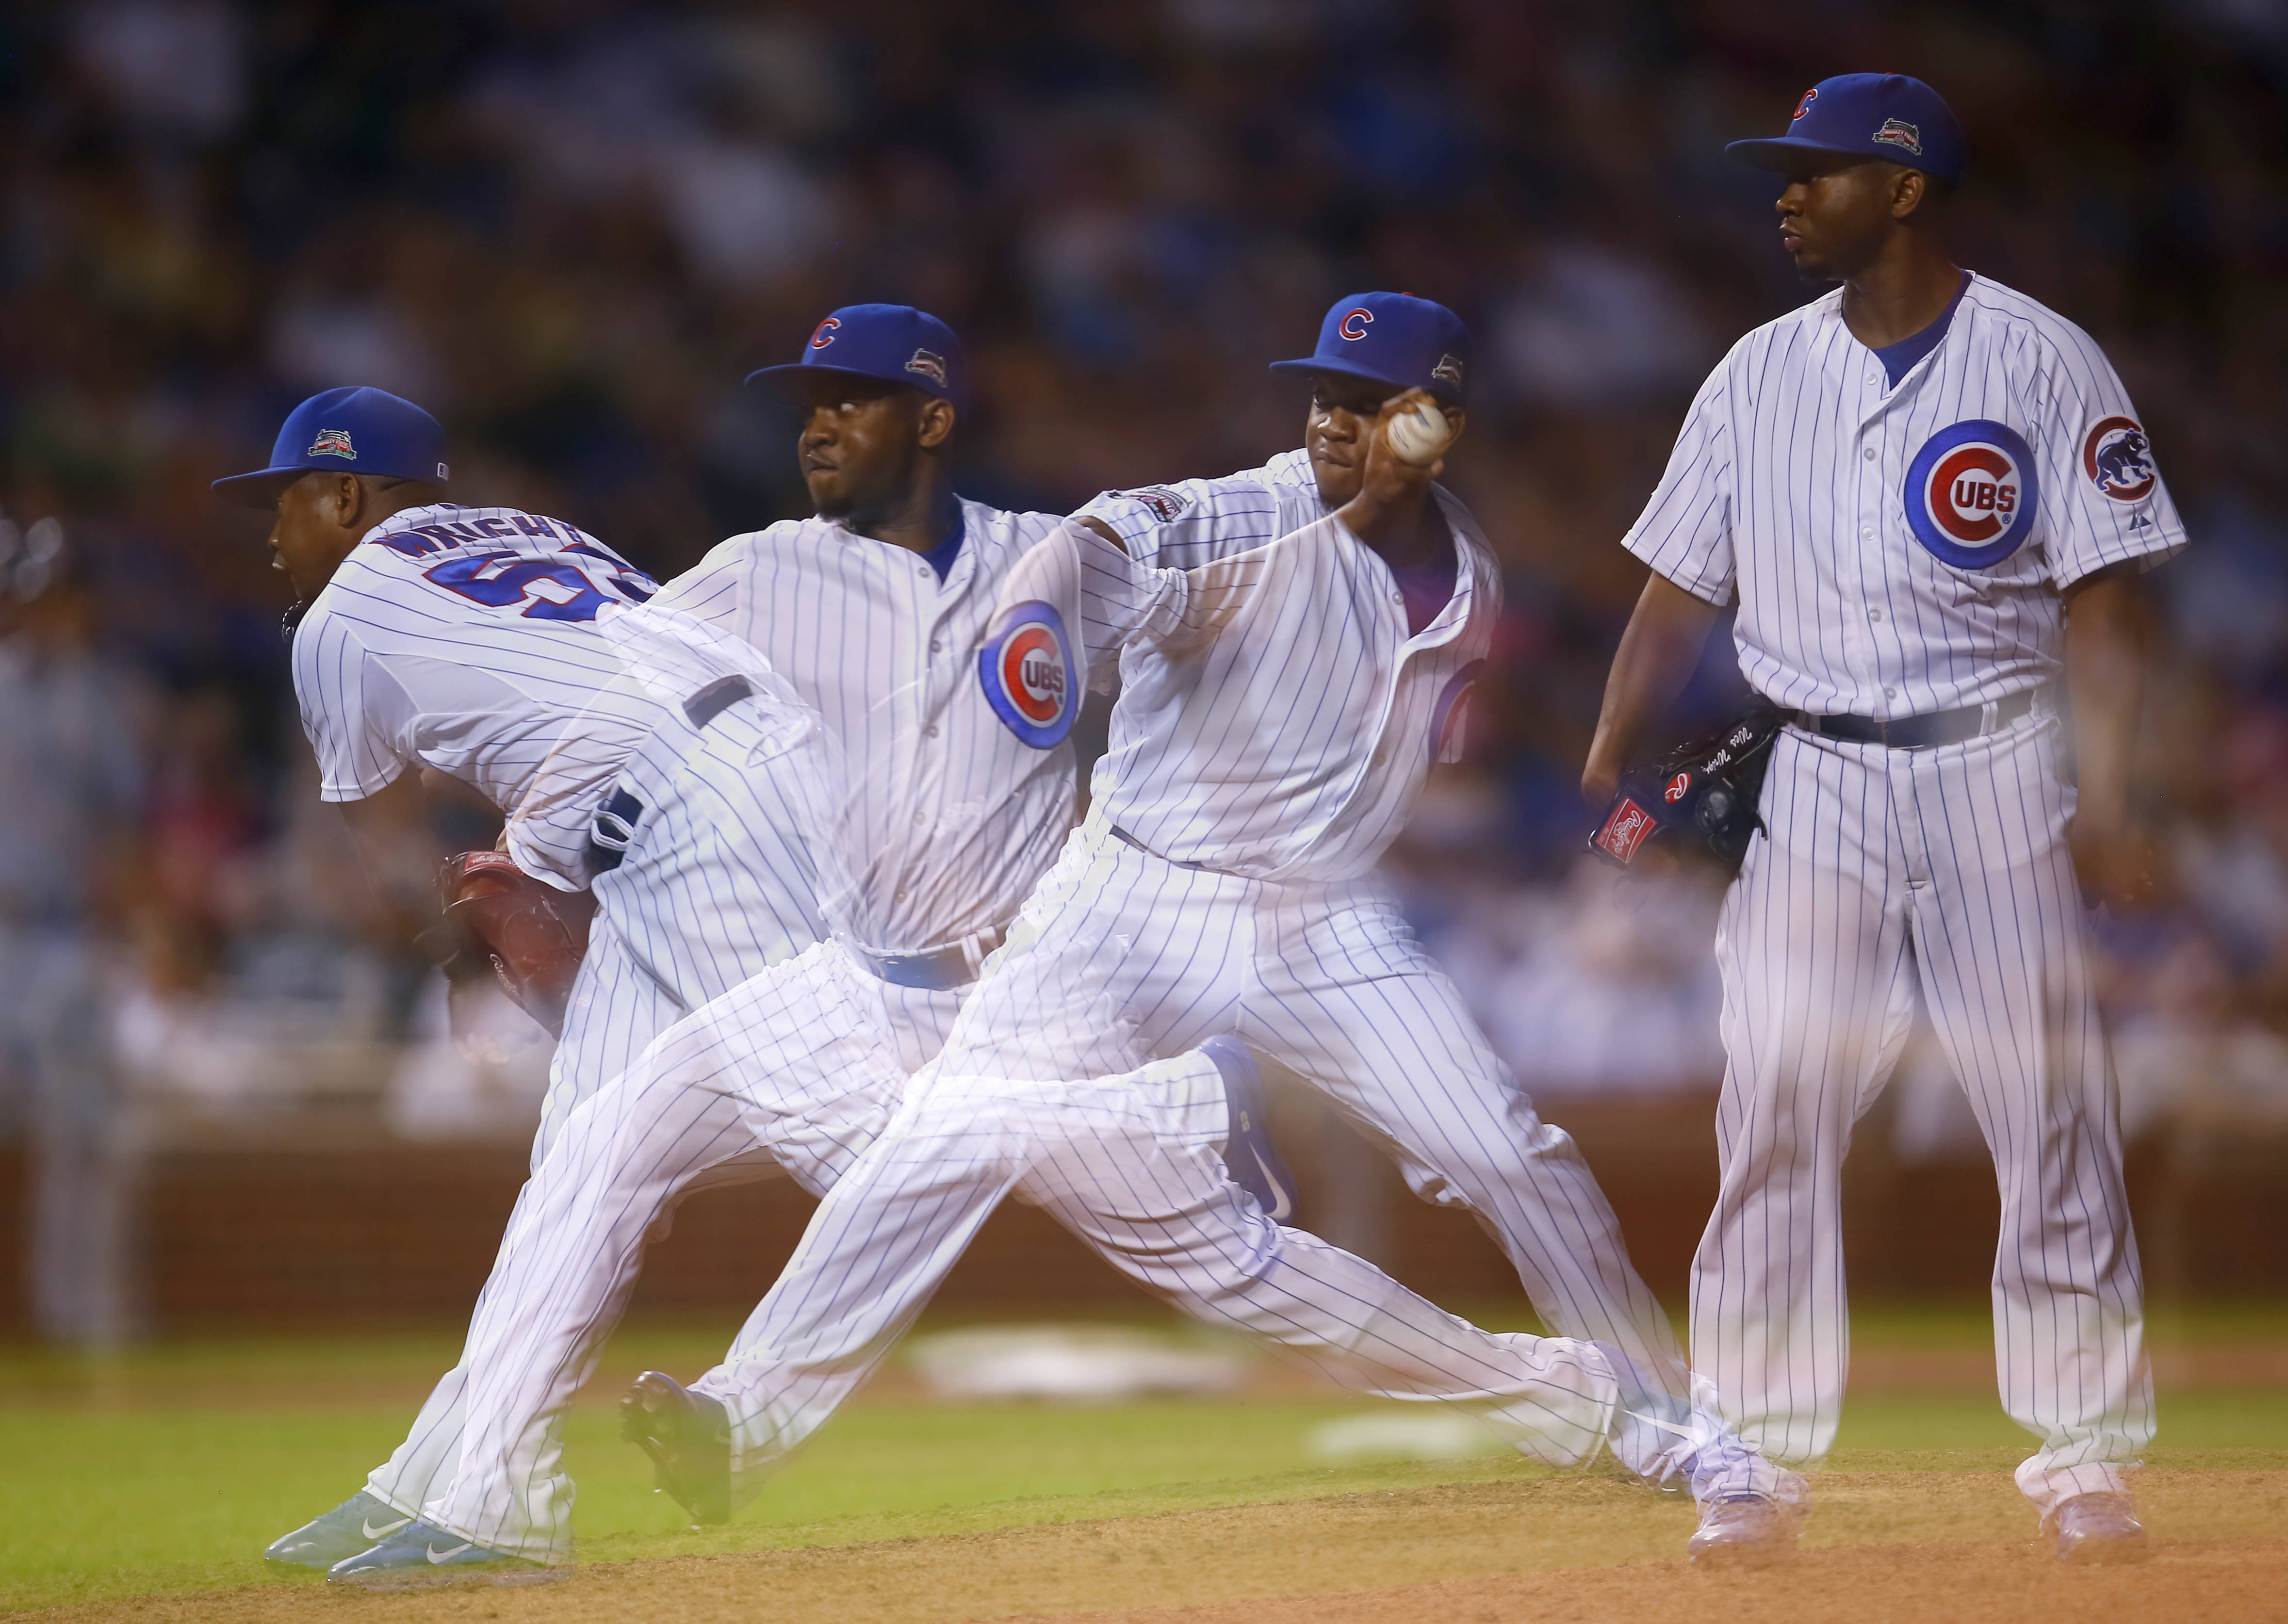 In this multiple exposure photo Chicago Cubs relief pitcher Wesley Wright (53) delivers a pitch against the San Diego Padres during the ninth inning of a baseball game in Chicago, Tuesday, July 22, 2014. The Cubs won the game 6-0.